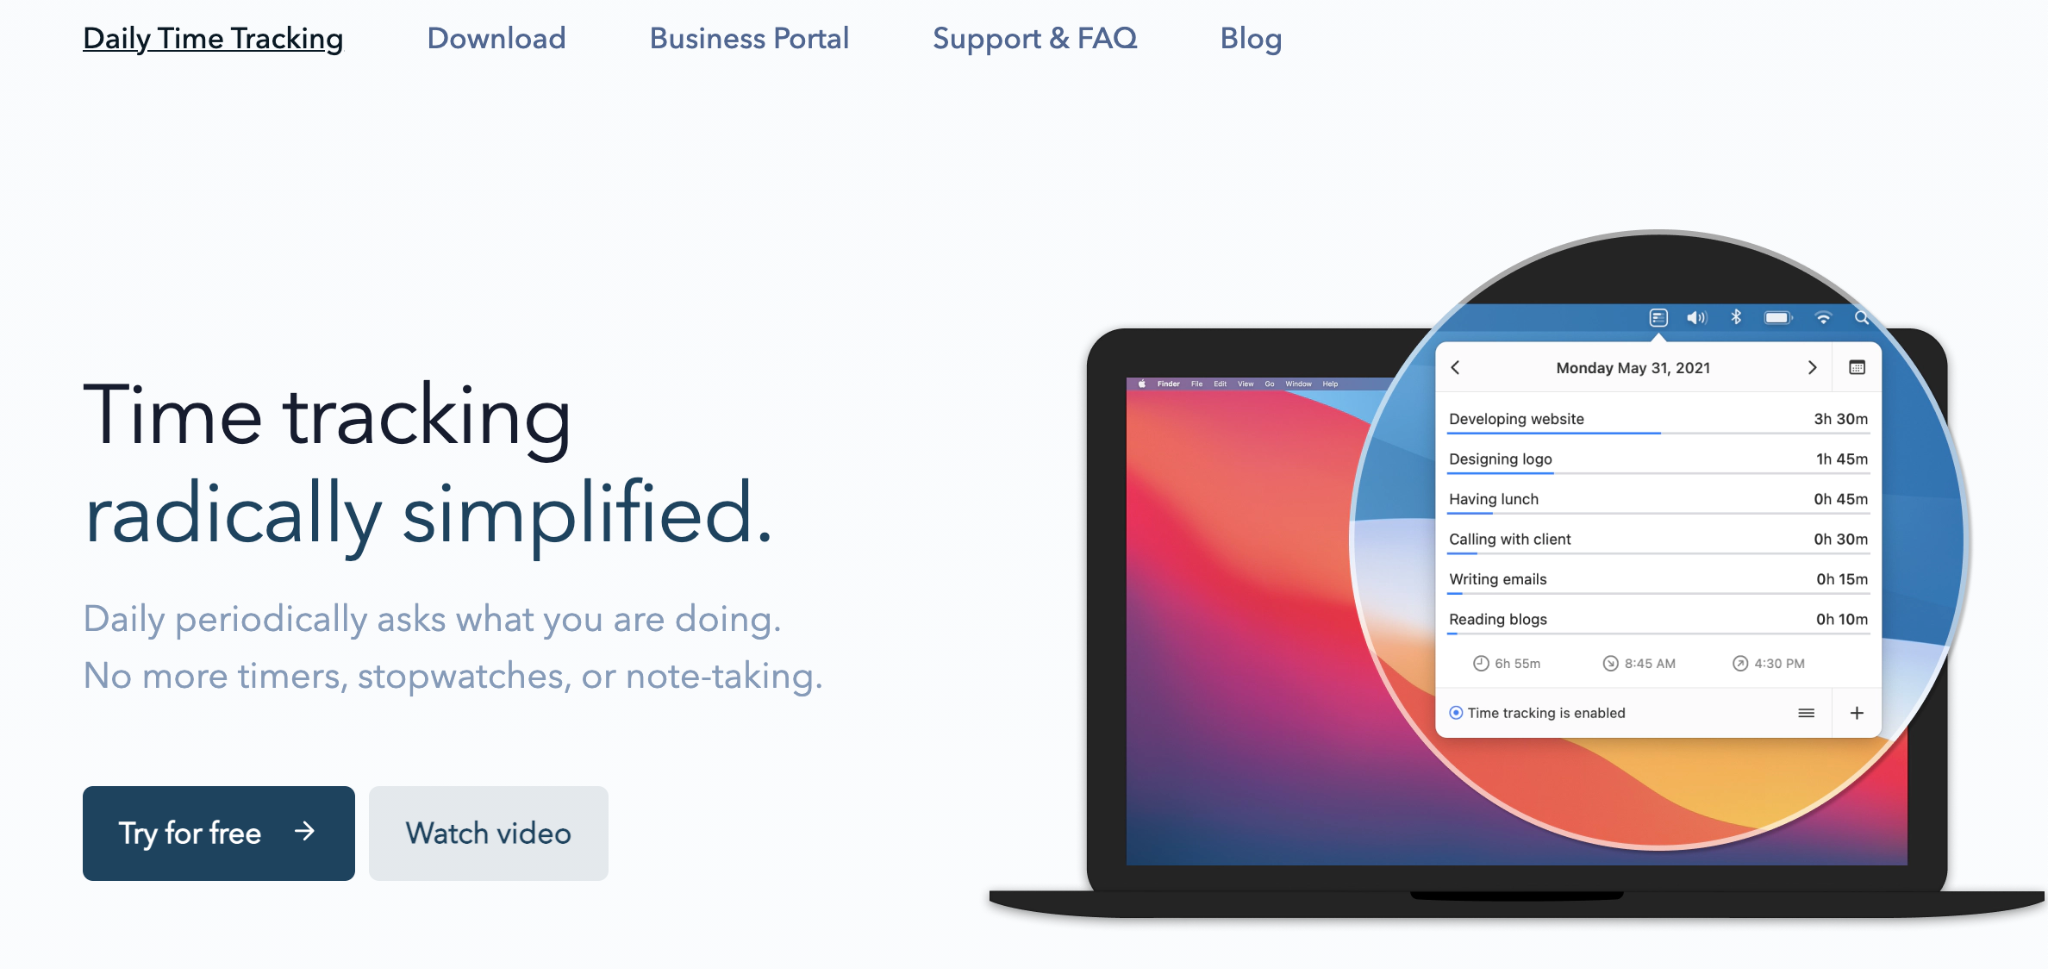 Daily time tracking app for Mac – screenshot from the webpage